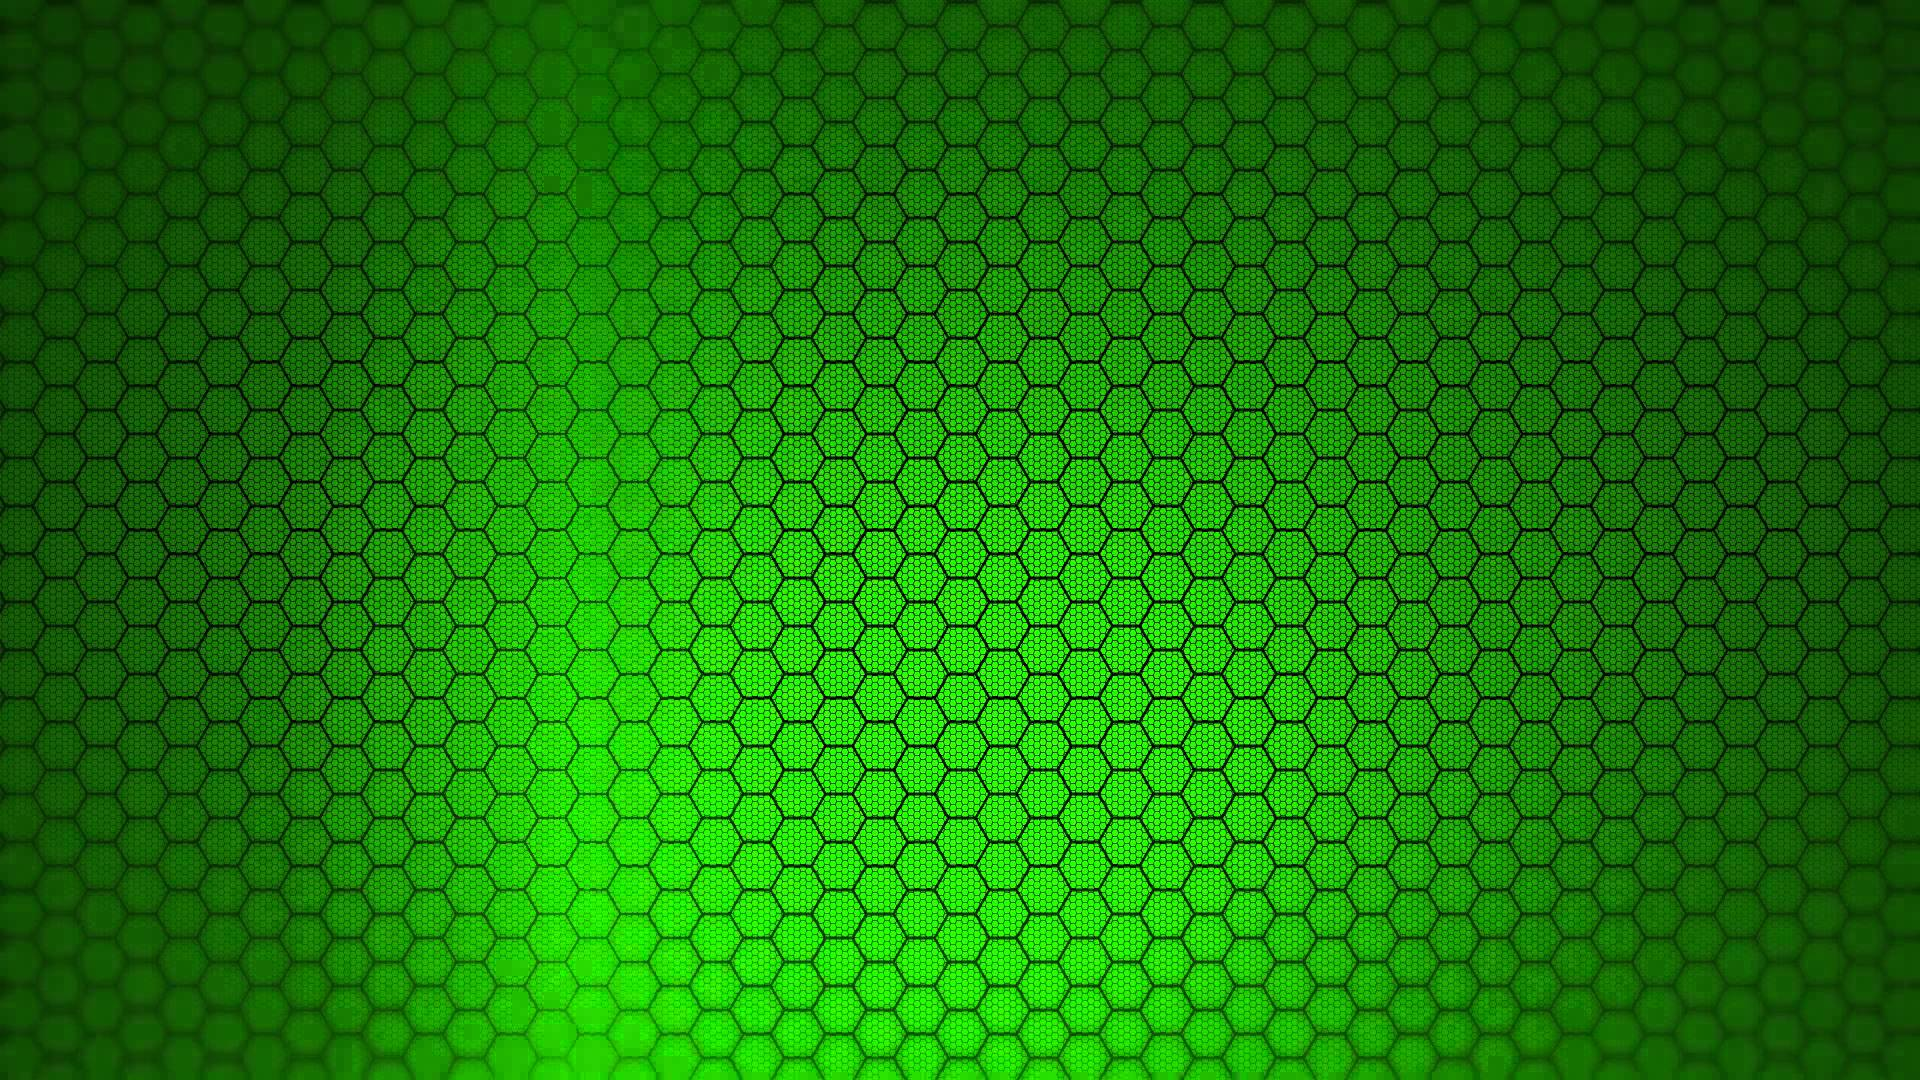 Green Hexagonal Cell Background Images 99.13 Kb